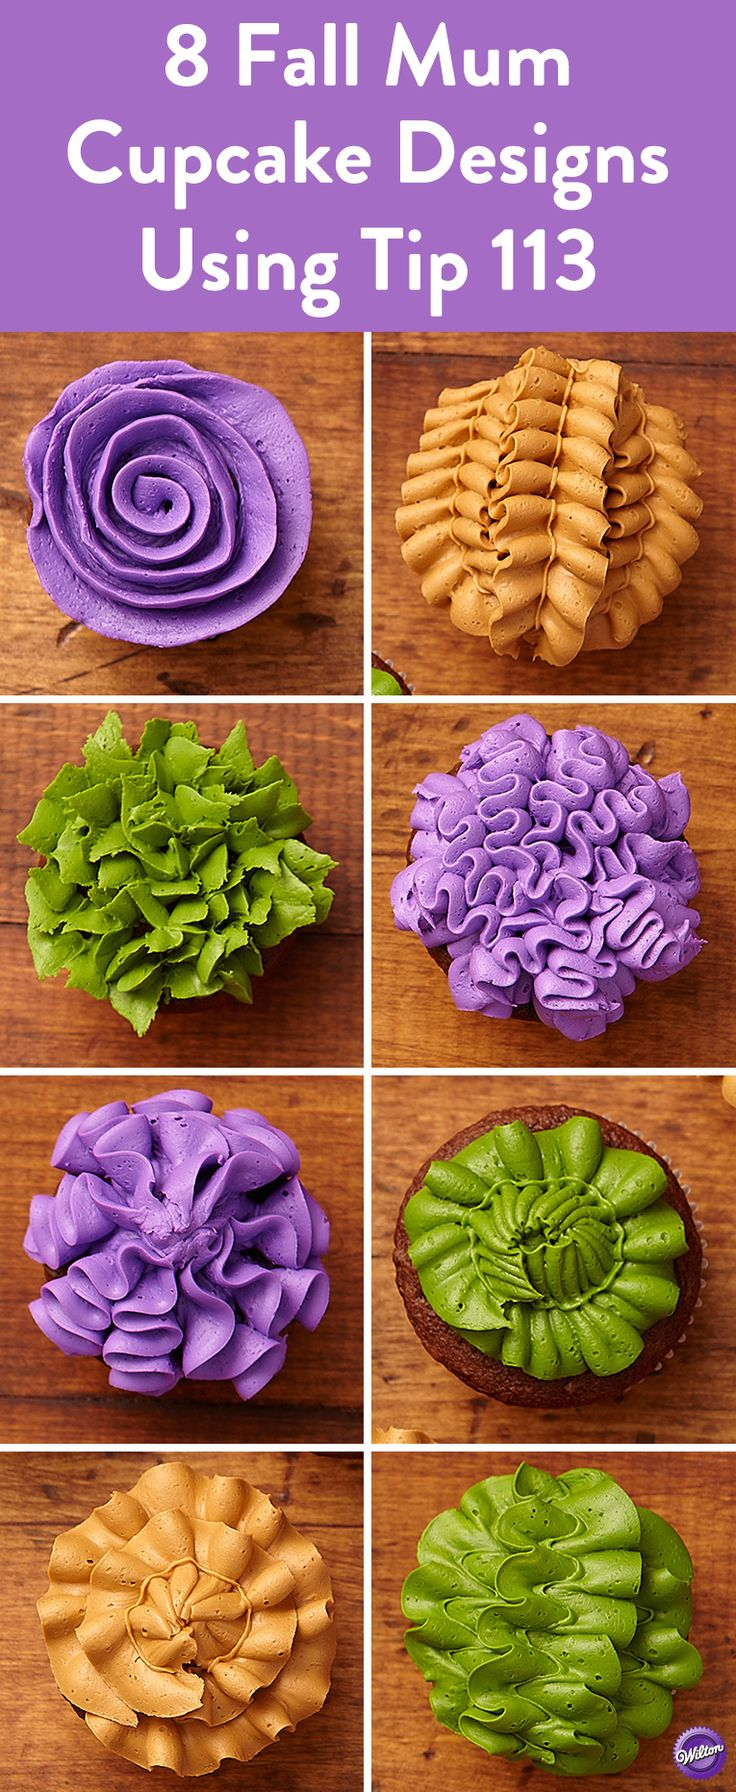 8 Fall Mum Cupcake Designs Using Tip 113 - Create 8 stunning cupcake designs in the rich shades of fall mums using Wilton decorating tip 113. Use the Color Right Performance Color System to get the vivid colors.